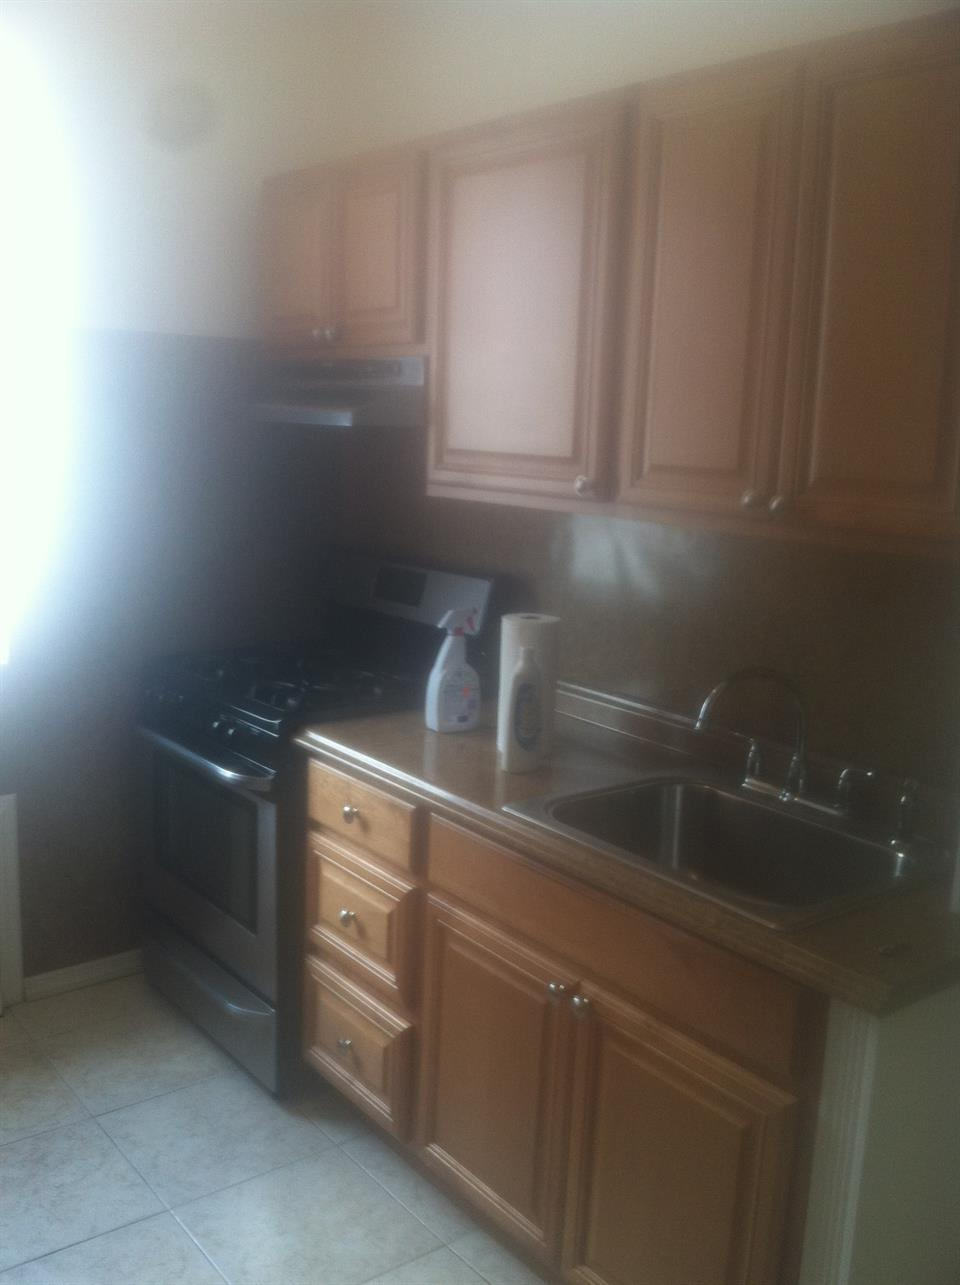 Residential for Rent at 80th St 15th & 16th Ave. New York, New York 11228 United States